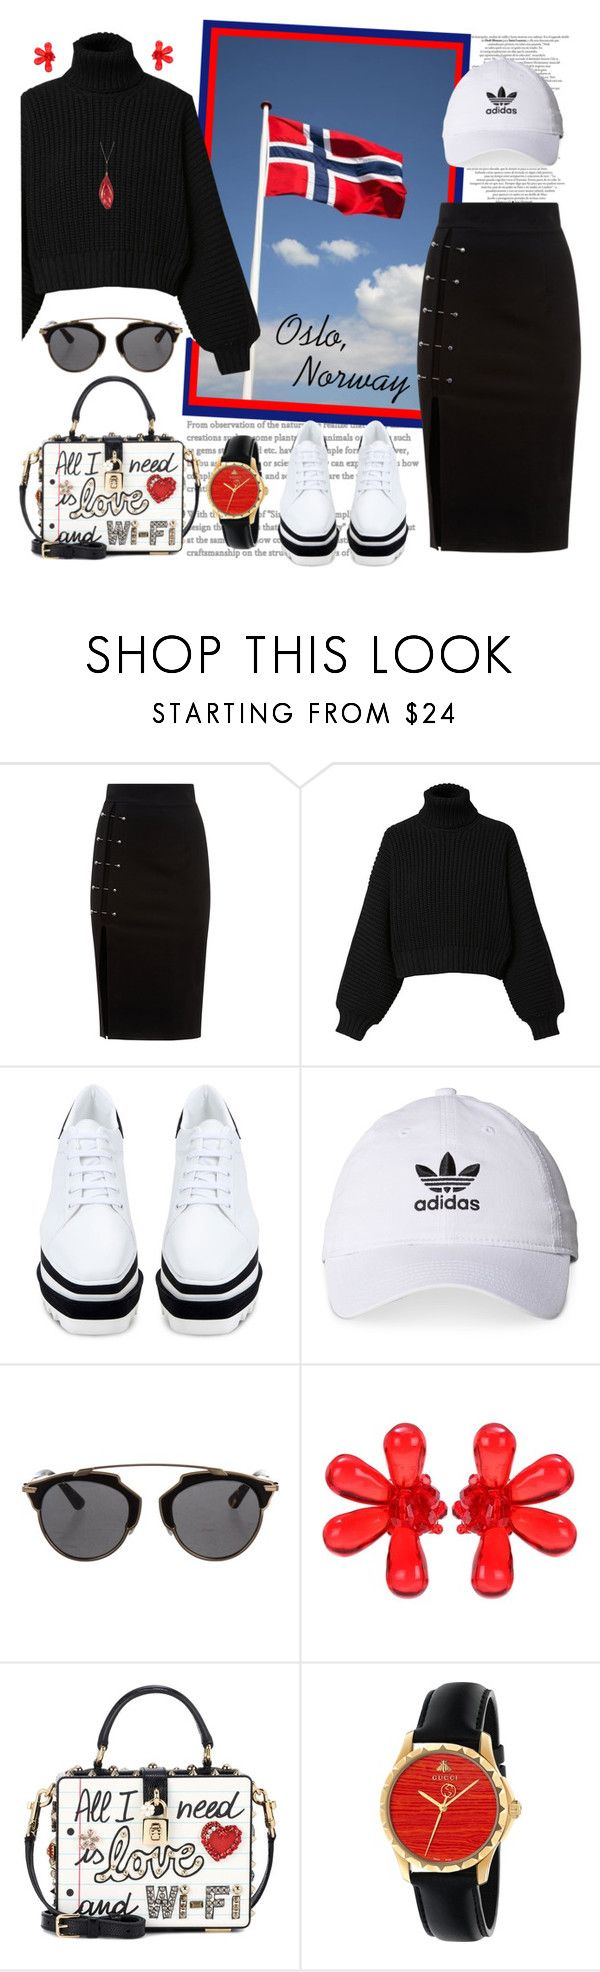 """A Walking Tour of Oslo ..."" by krusie ❤ liked on Polyvore featuring Diesel, STELLA McCARTNEY, adidas, Christian Dior, Simone Rocha, Dolce&Gabbana and Gucci"